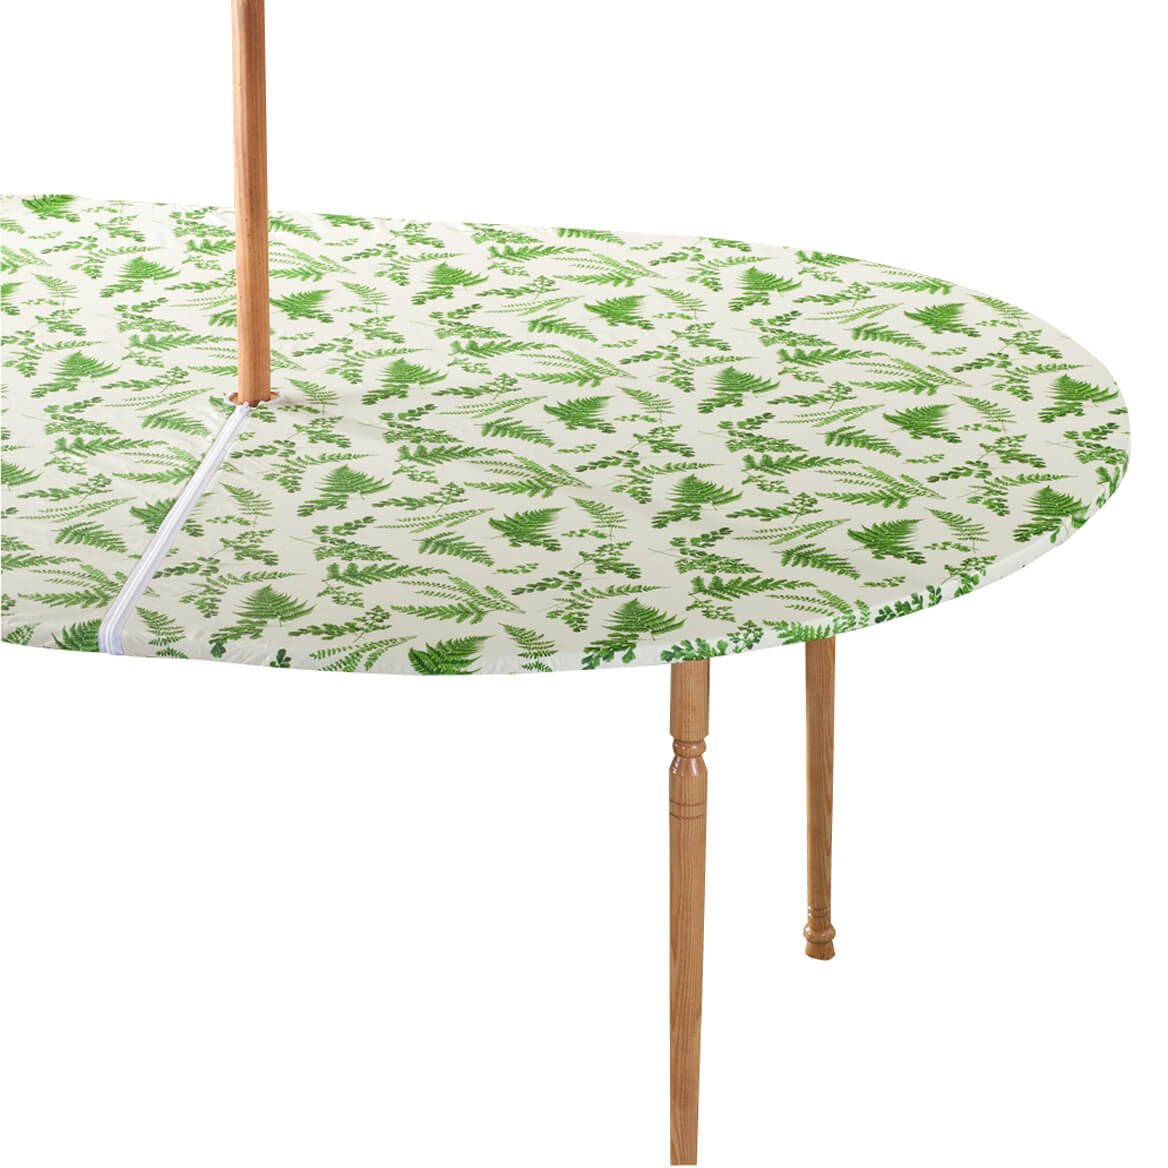 Miles Kimball Garden Greenery Zippered Elasticized Umbrella Table Cover - 42'' x 68'' Oval